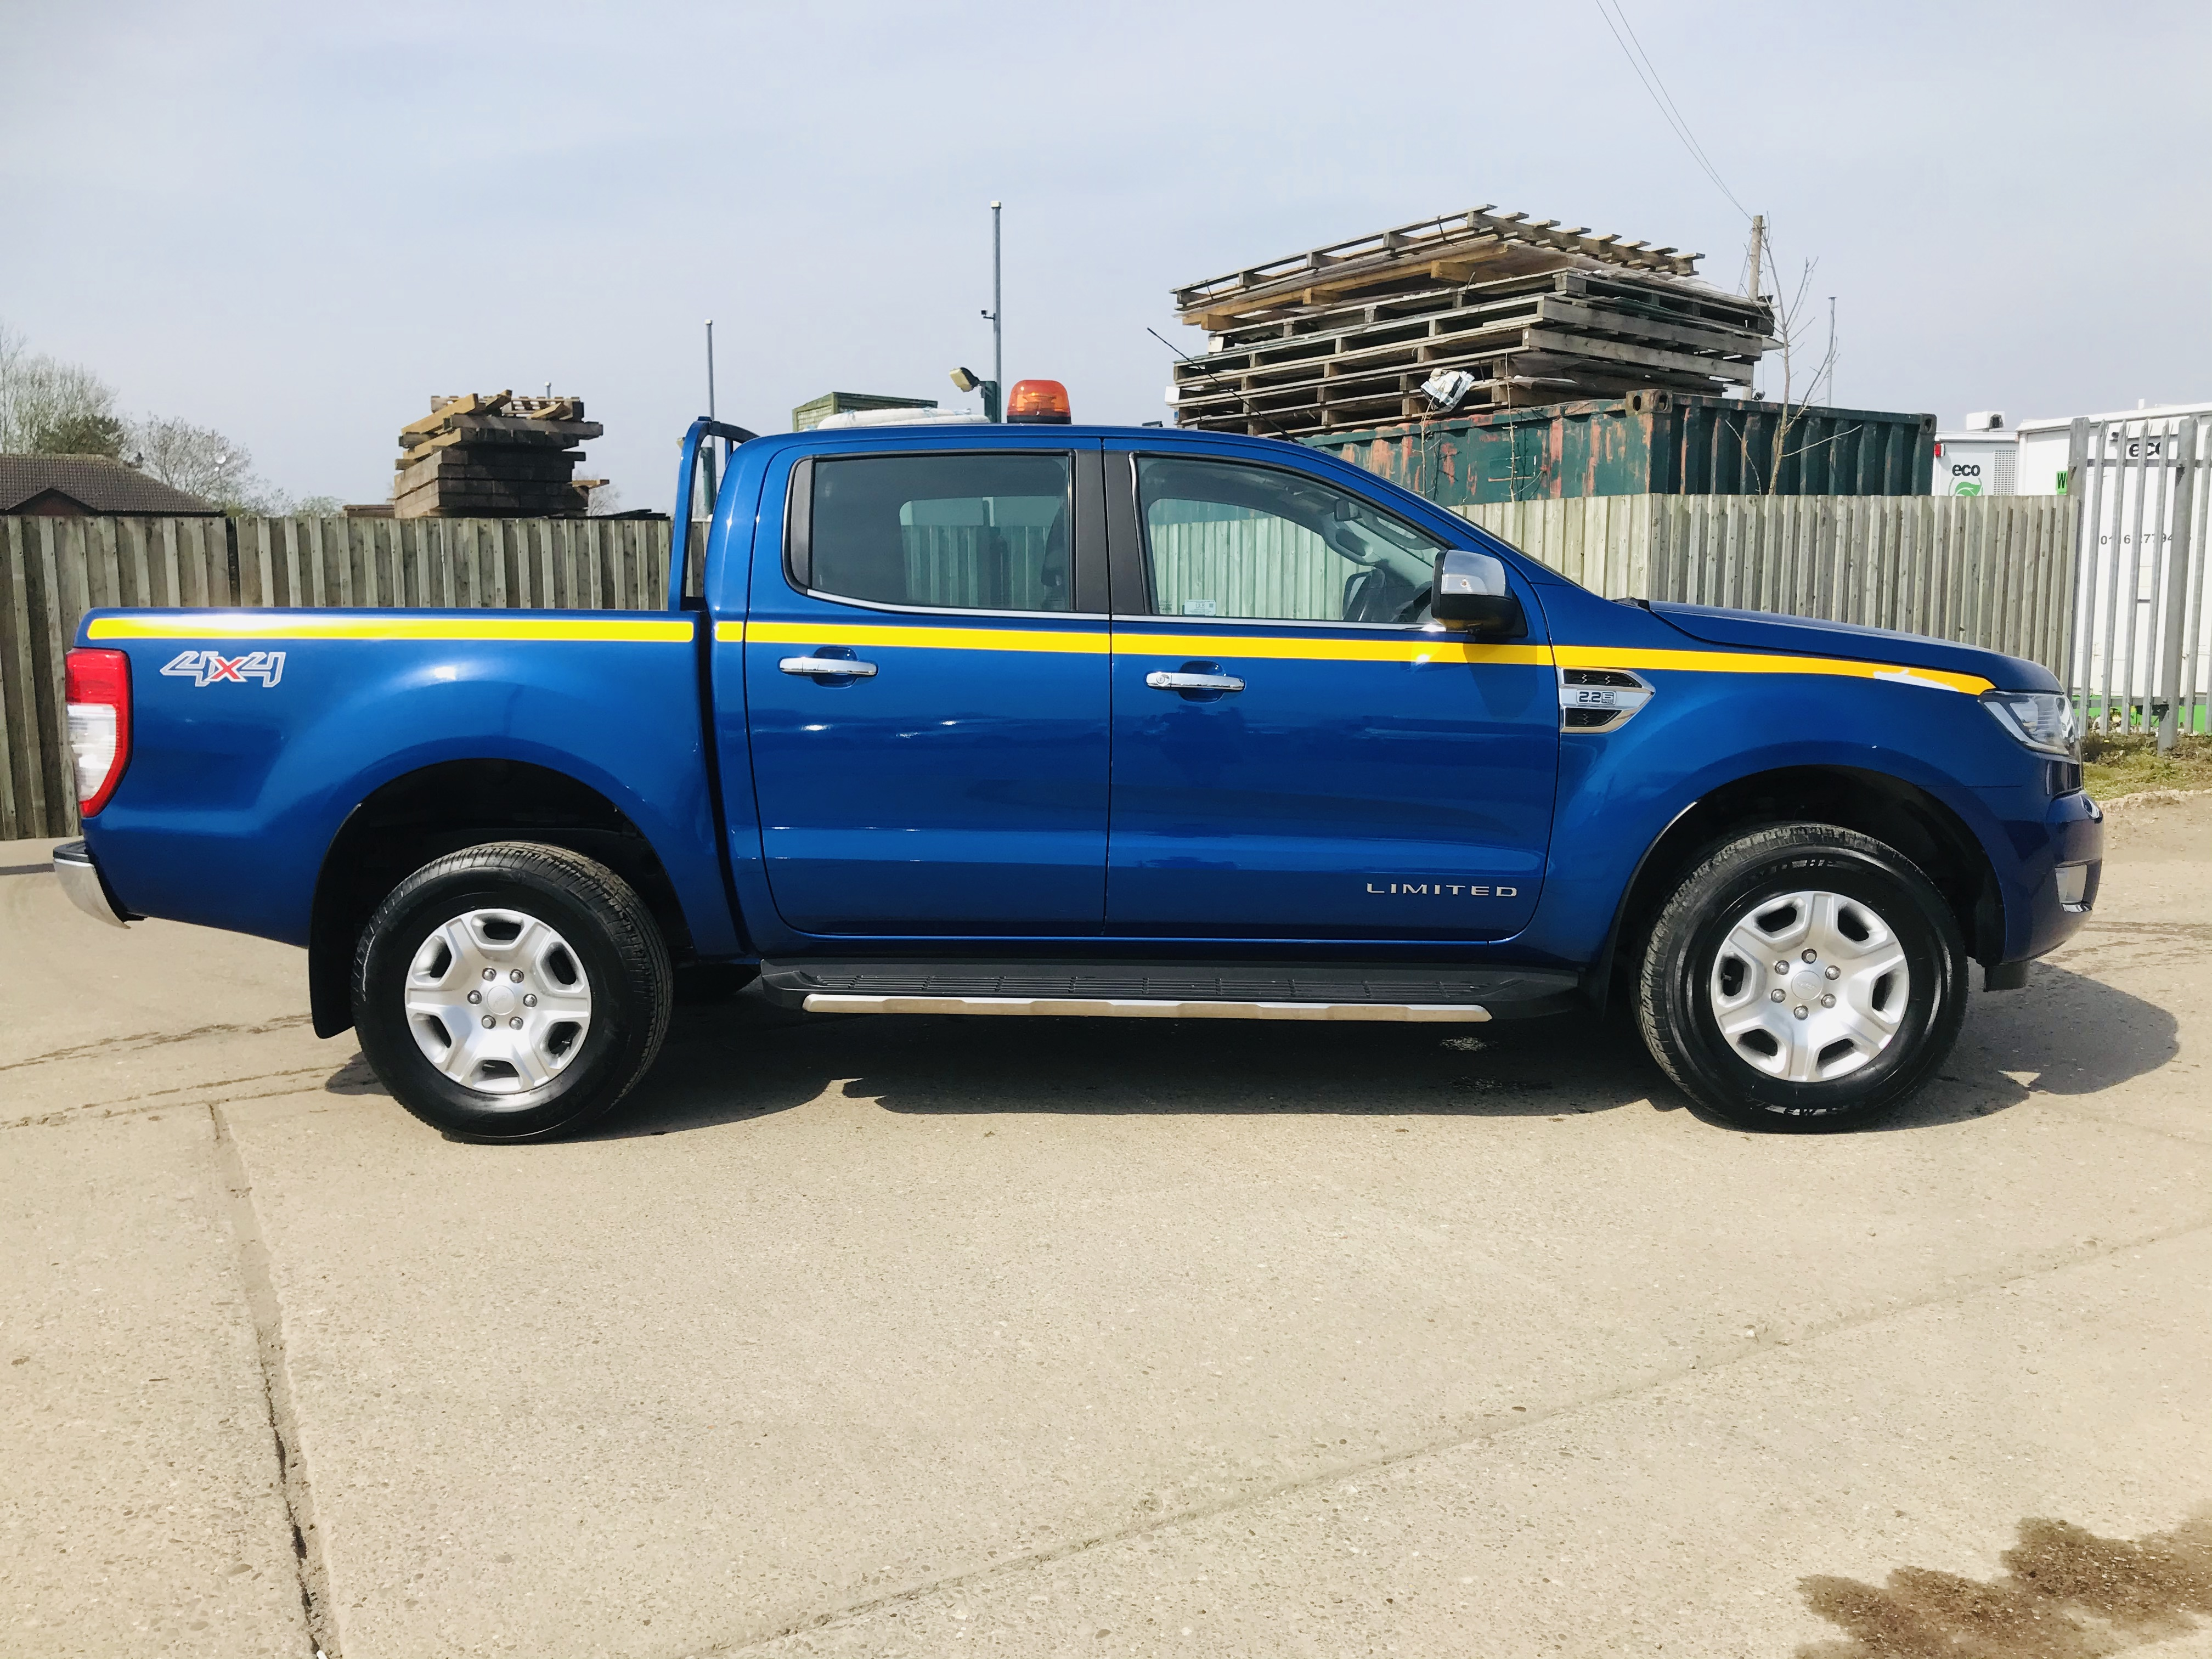 """ON SALE FORD RANGER 2.2TDCI """"LIMITED"""" D/C PICK UP (17 REG) 1 OWNER FSH - FULL LEATHER - CLIMATE & AC - Image 12 of 38"""